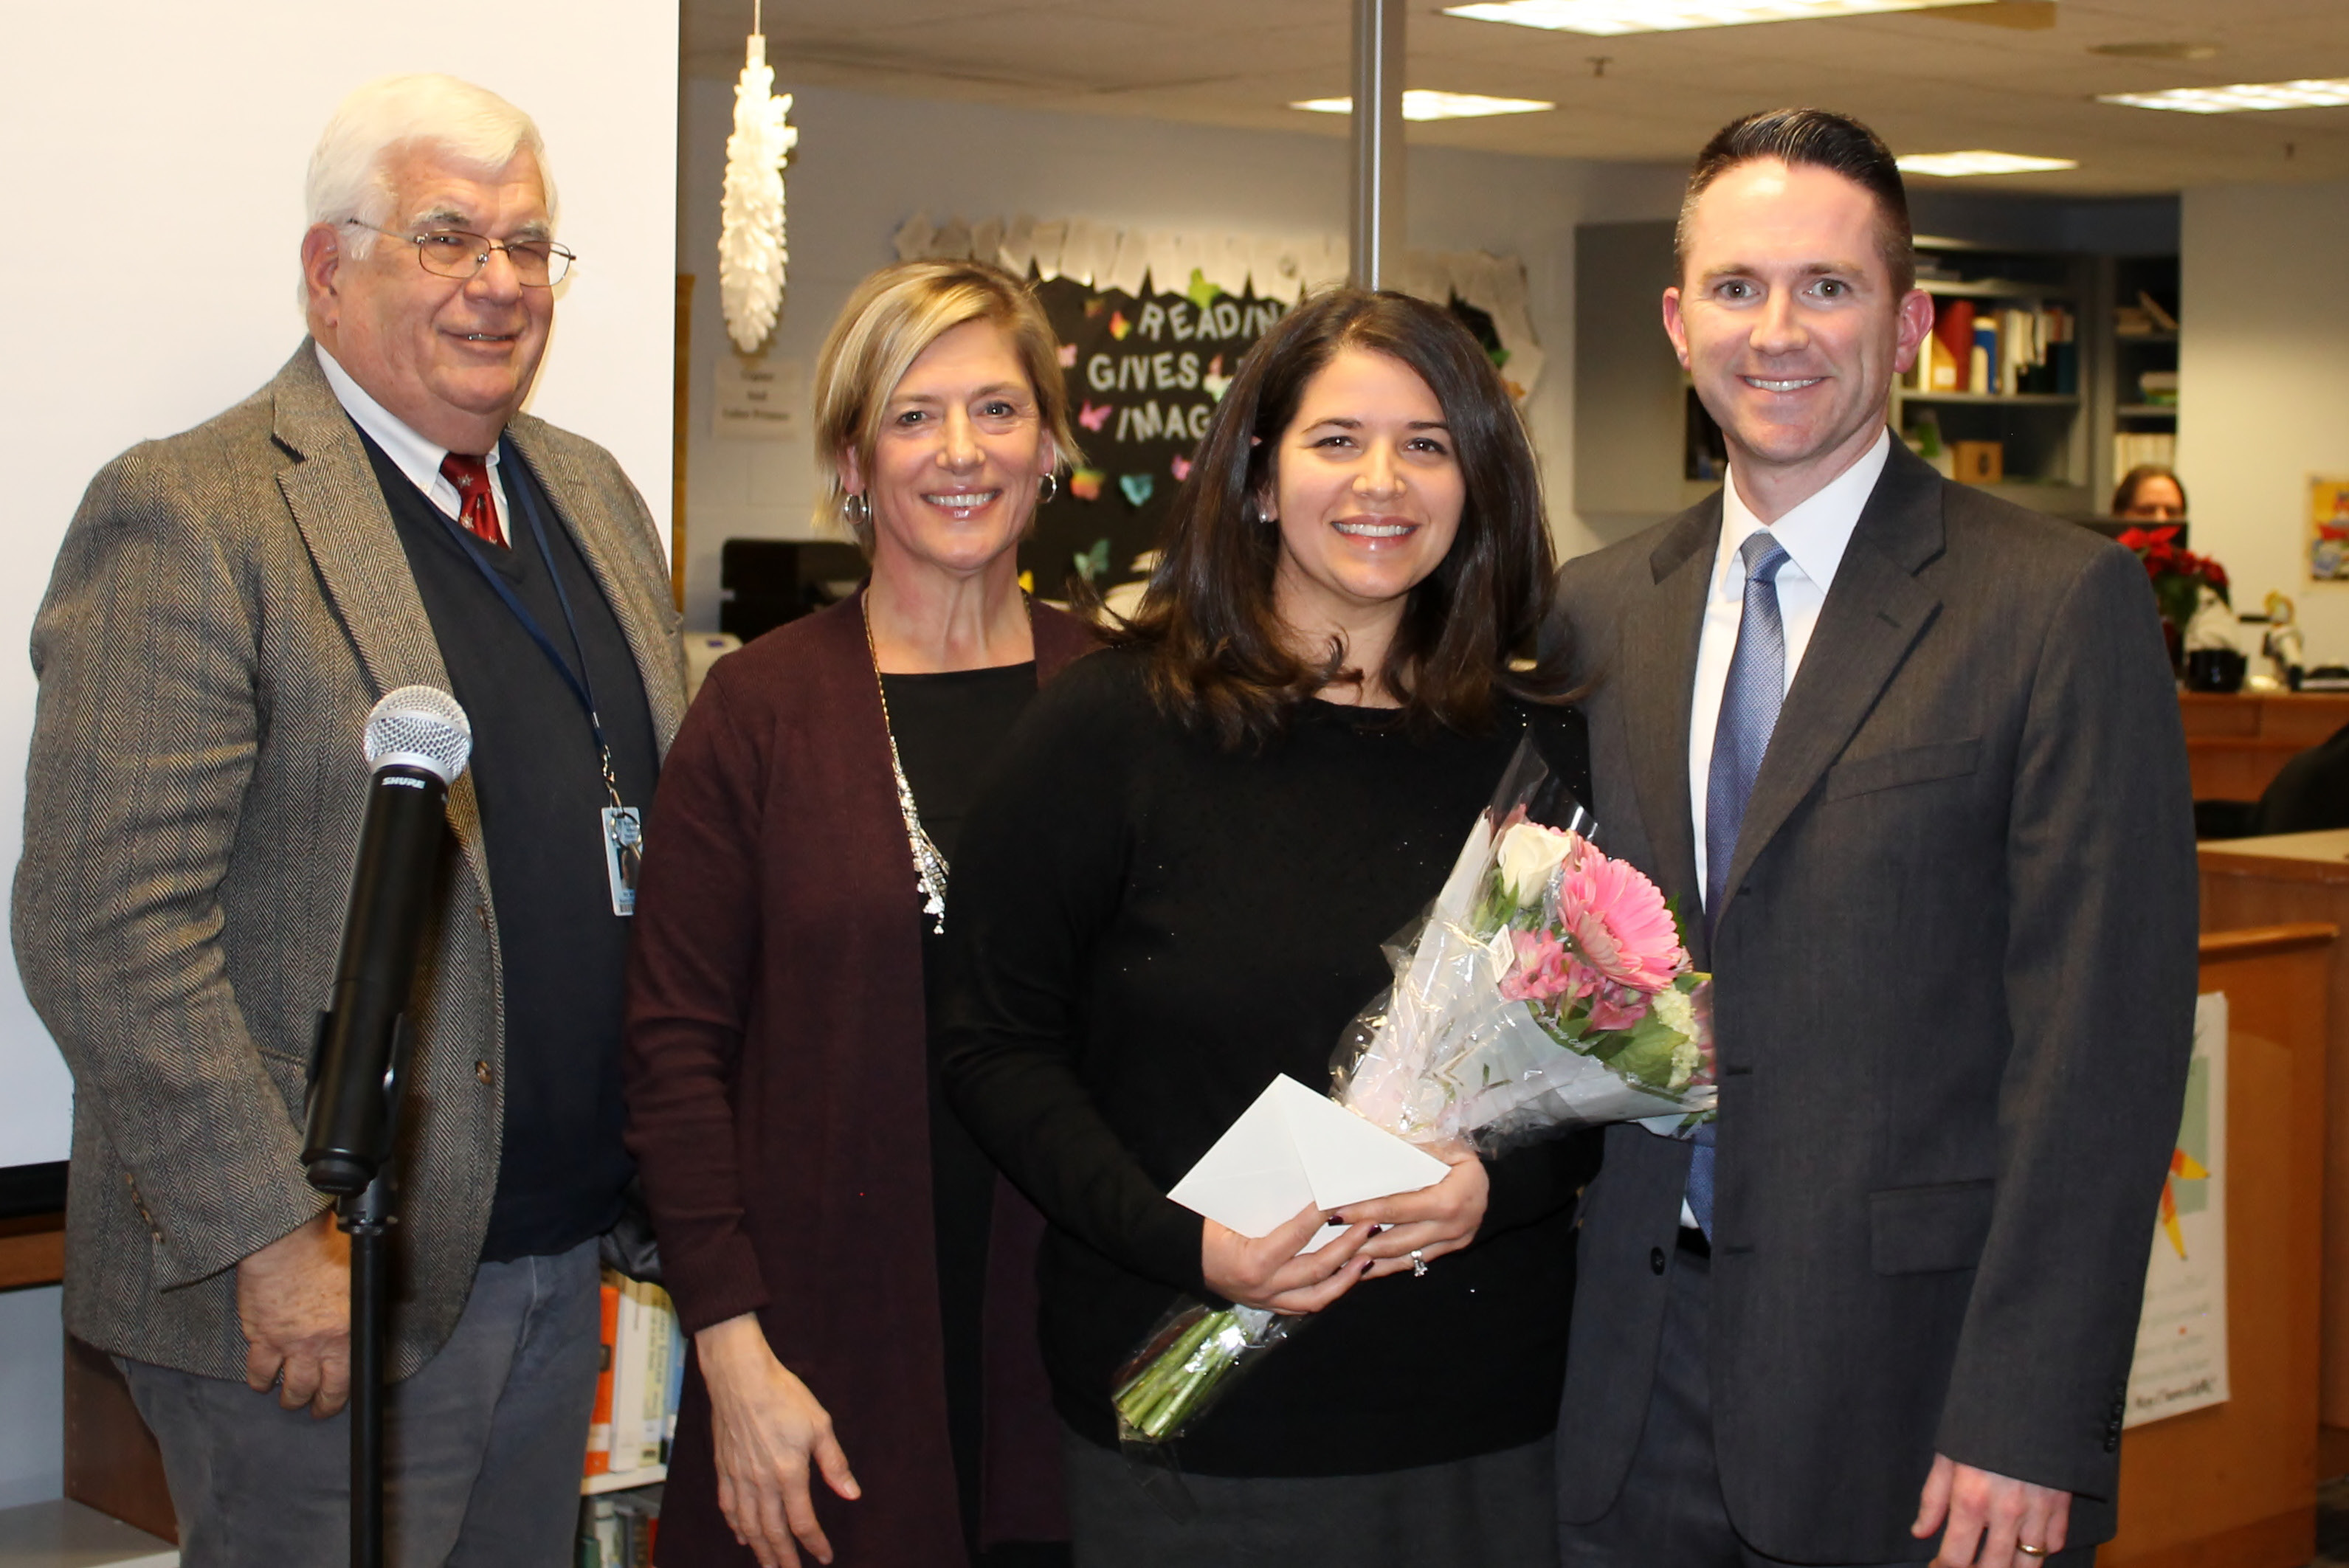 Recognizing RSD13 Teacher of the Year Valerie Swiantek (third from left) are Board of Education Chair Bob Moore, Superintendent Kathryn Veronesi and Lyman Principal Tom Ford.